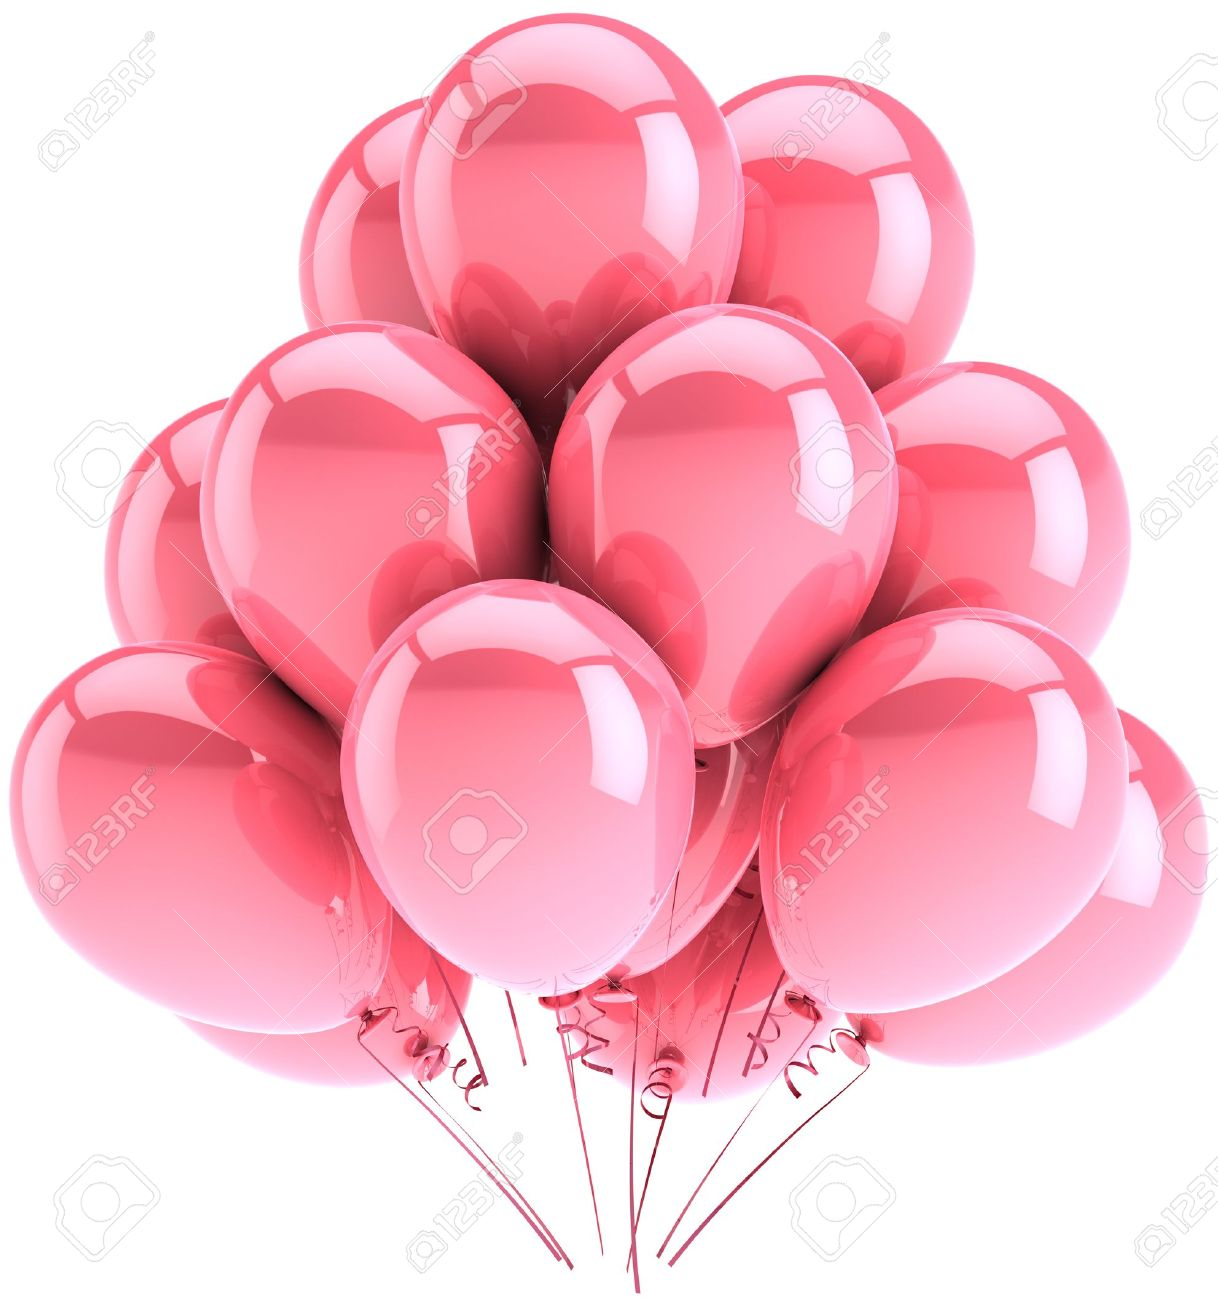 pink balloons images u0026 stock pictures royalty free pink balloons